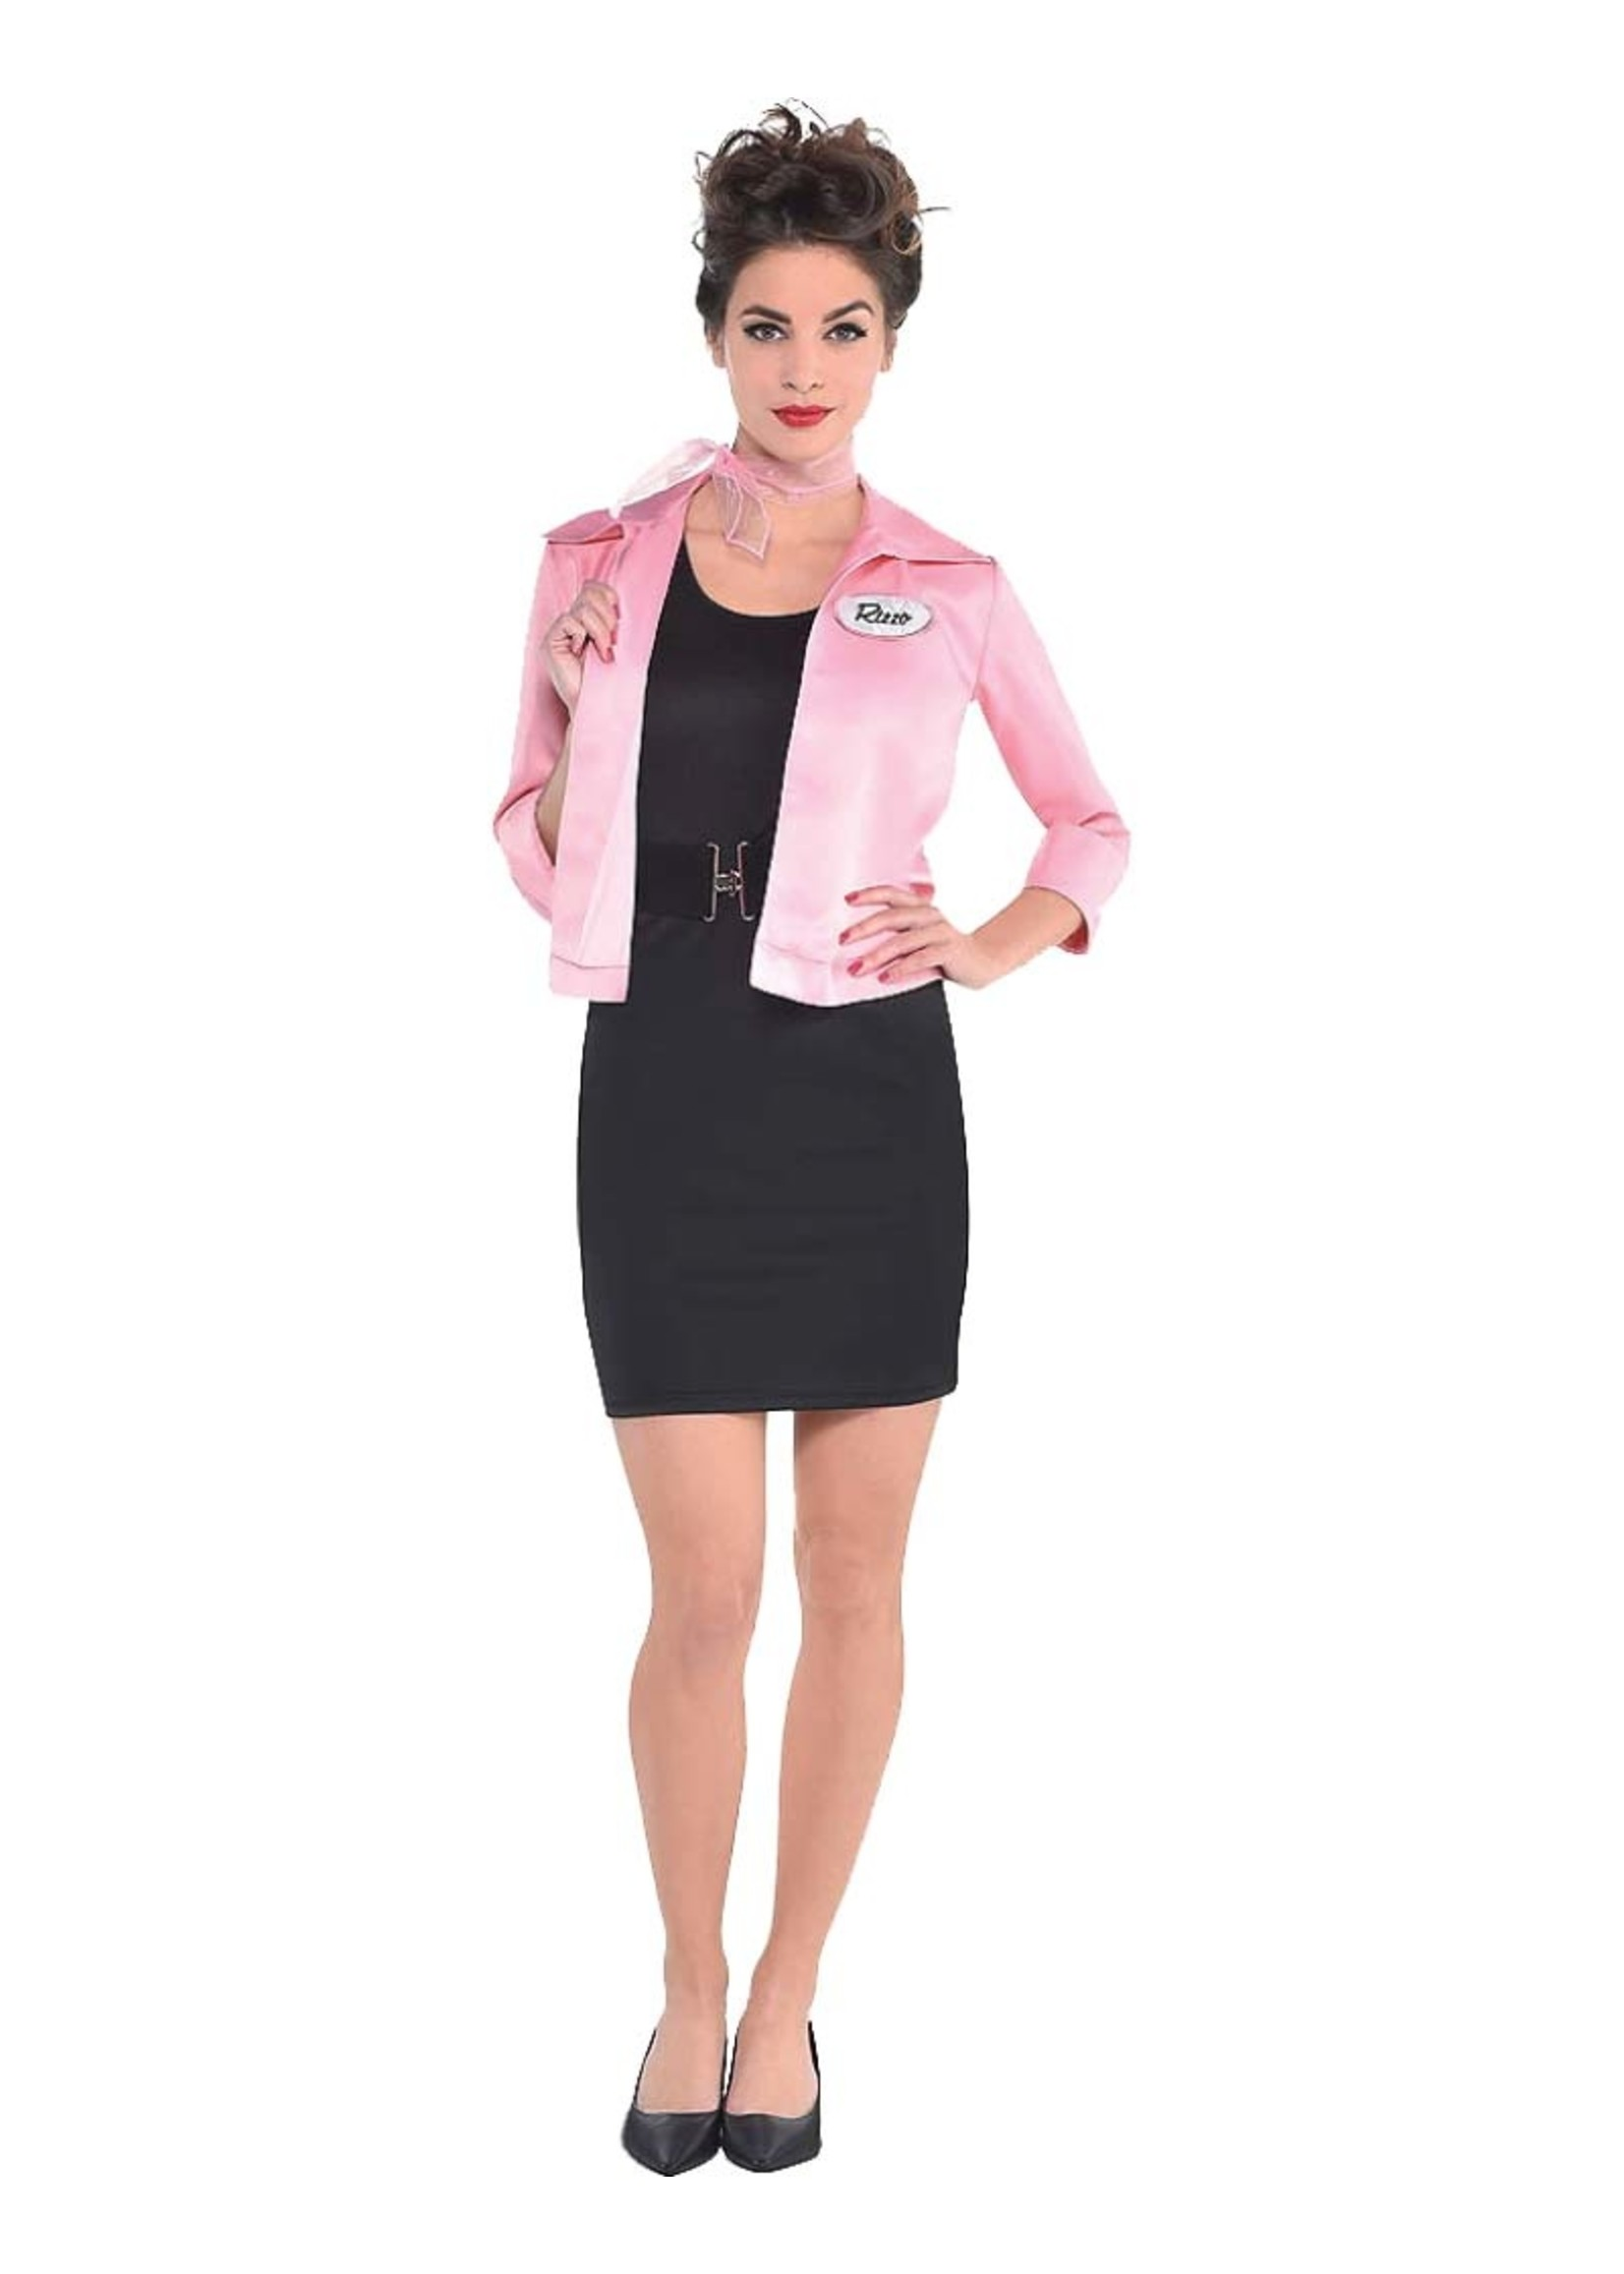 Grease Is The World - Women's